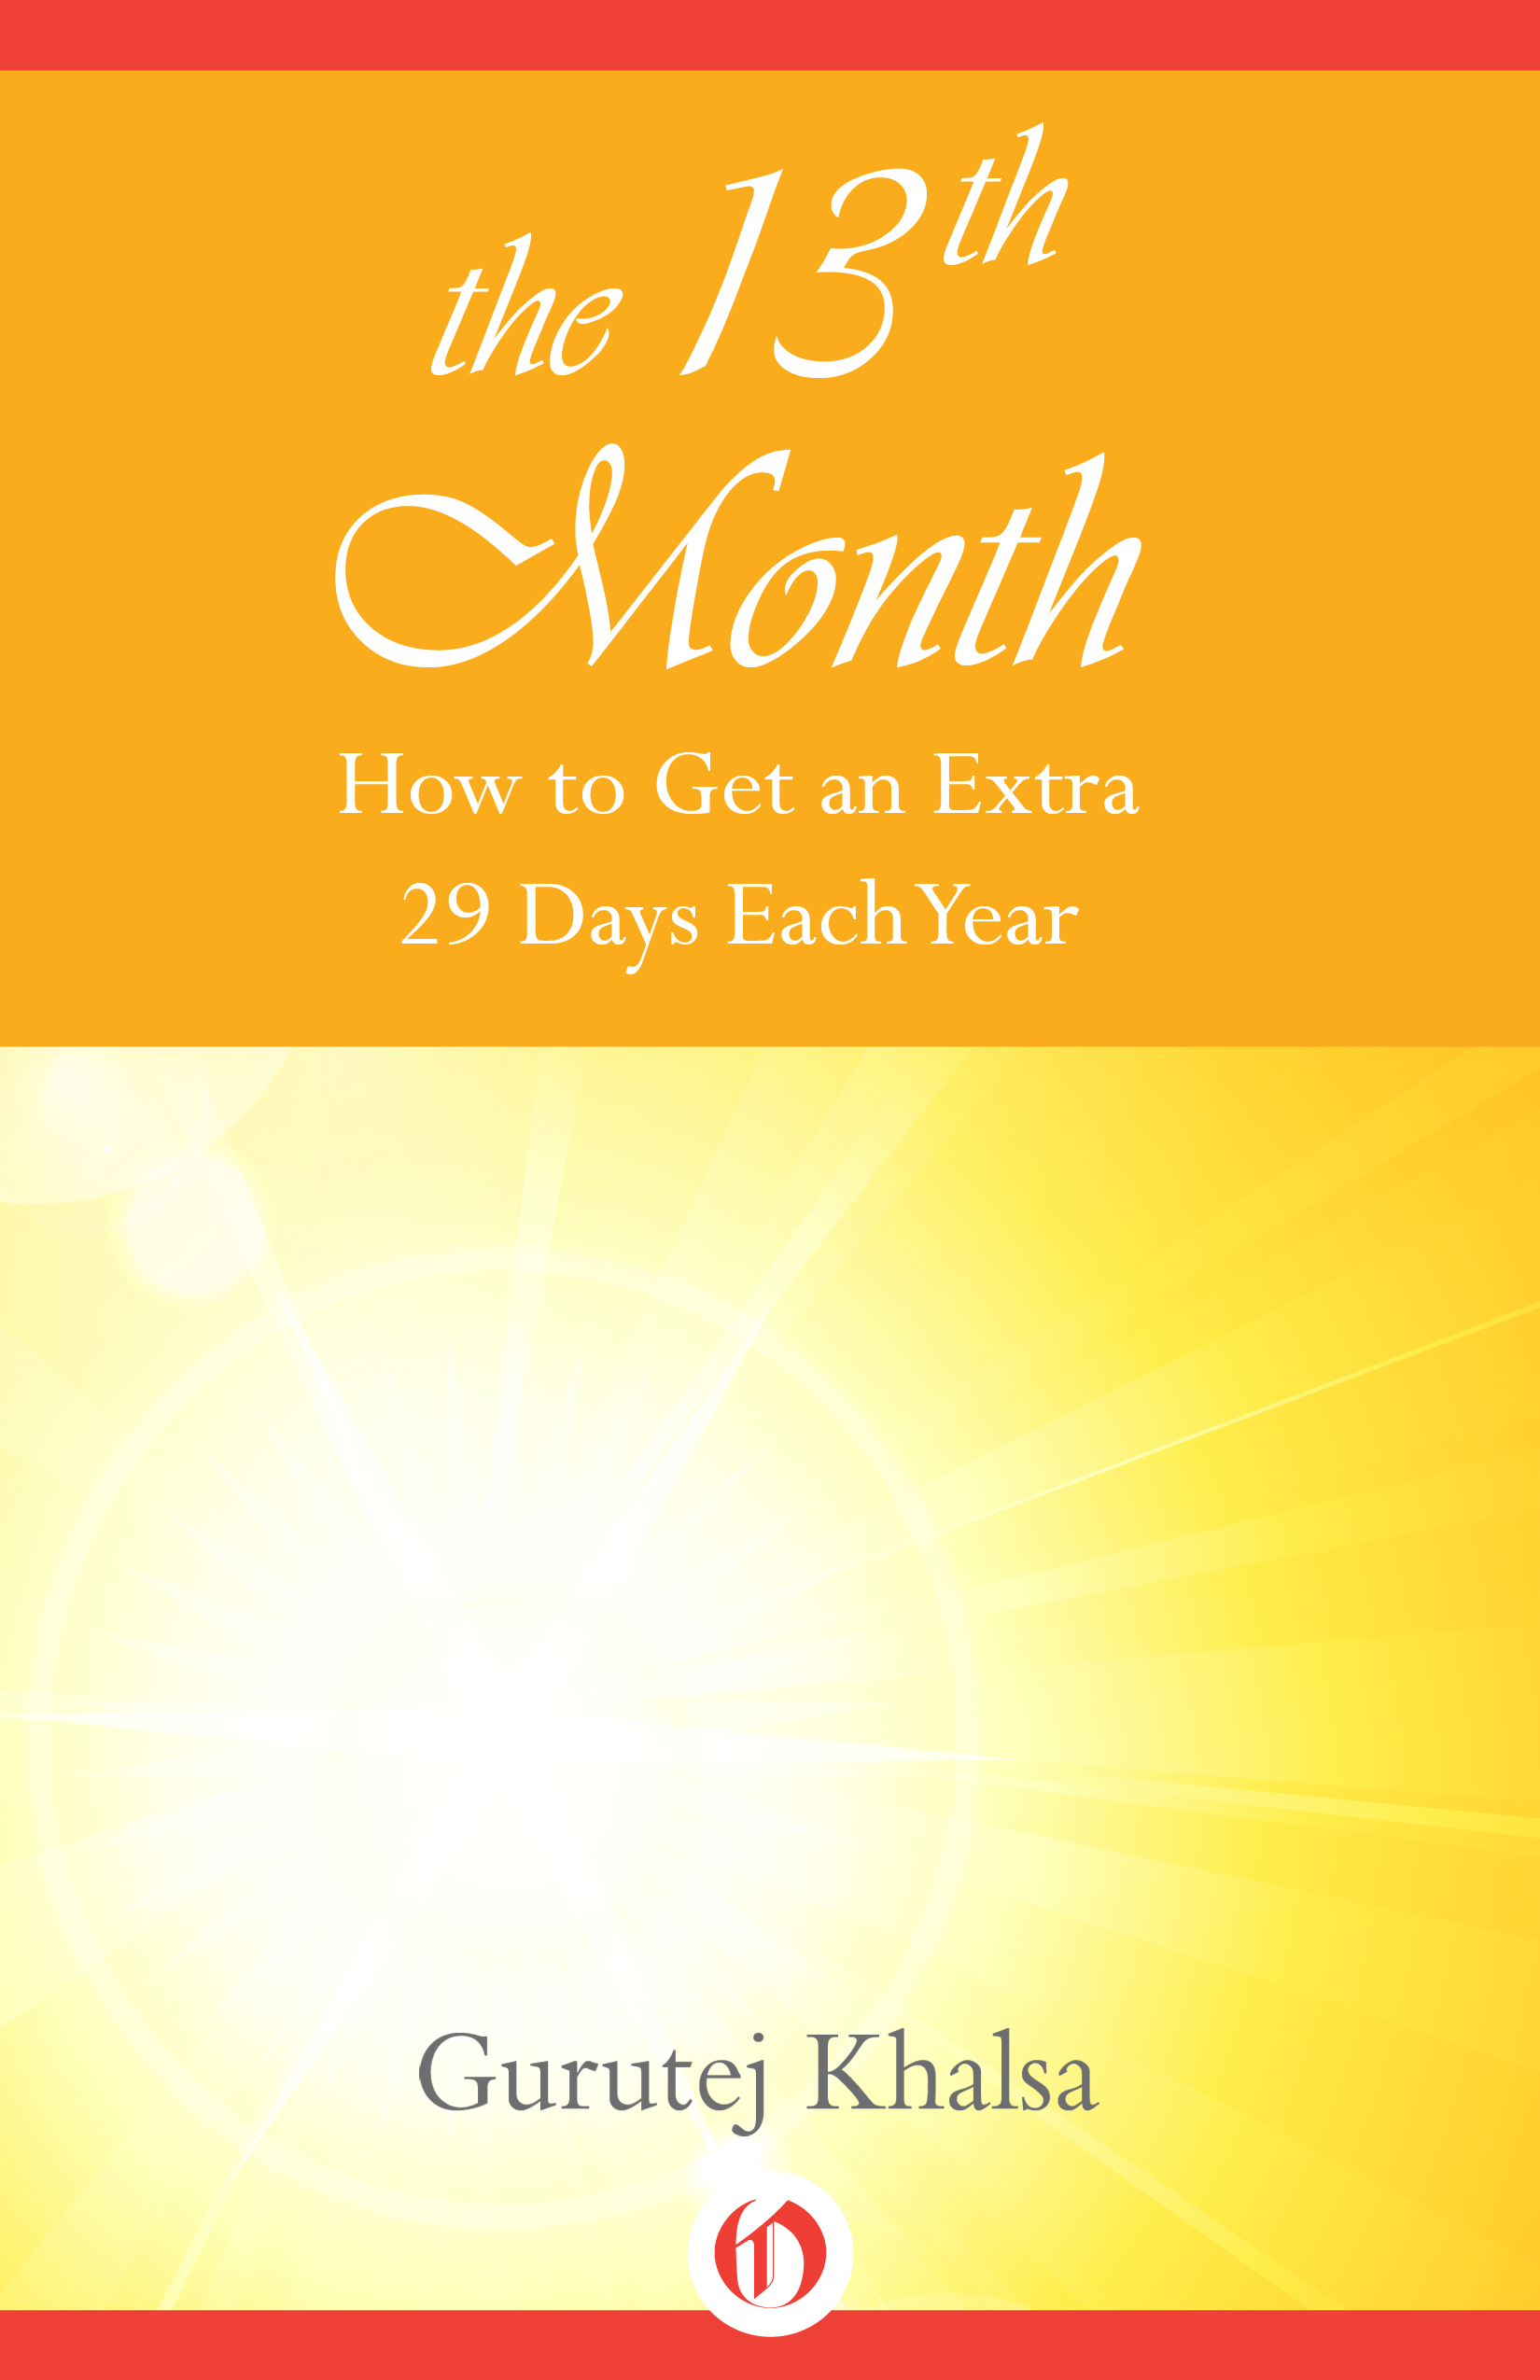 The 13th Month How to Get an Extra 29 Days Each Year